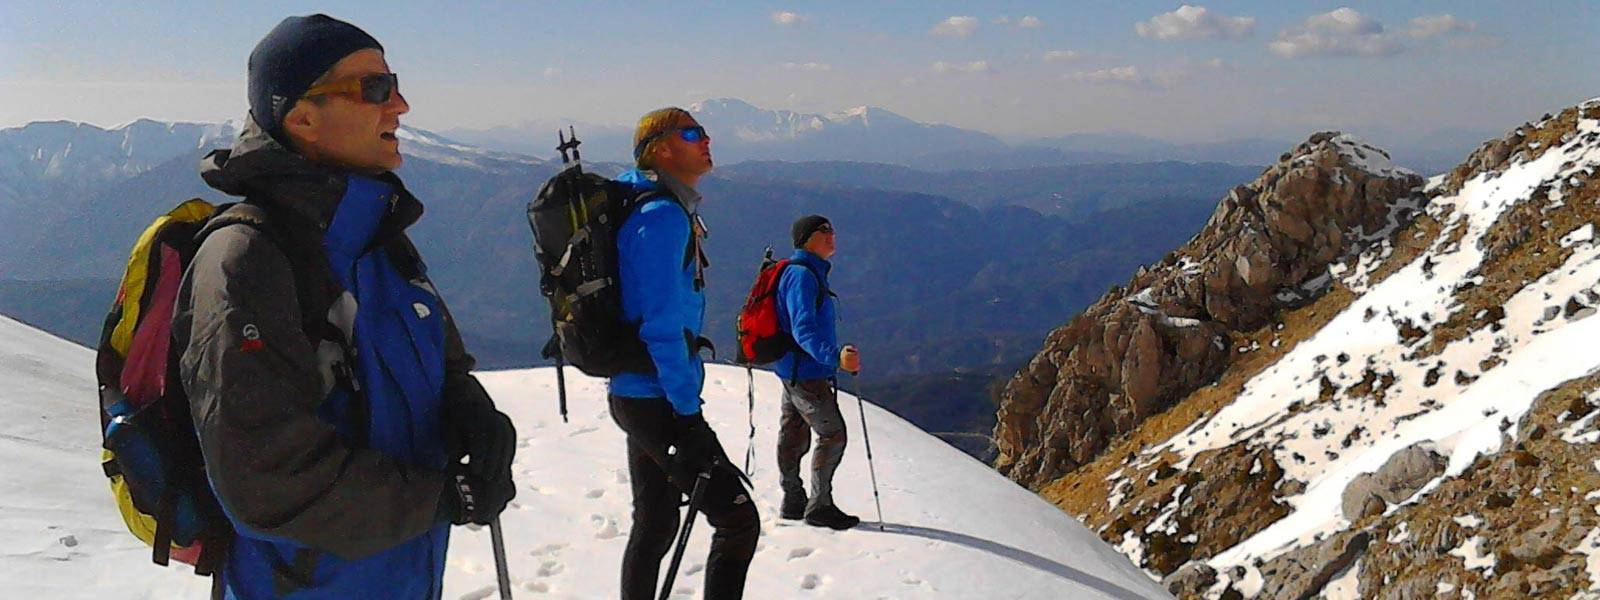 Outdoor activities and mountain sport